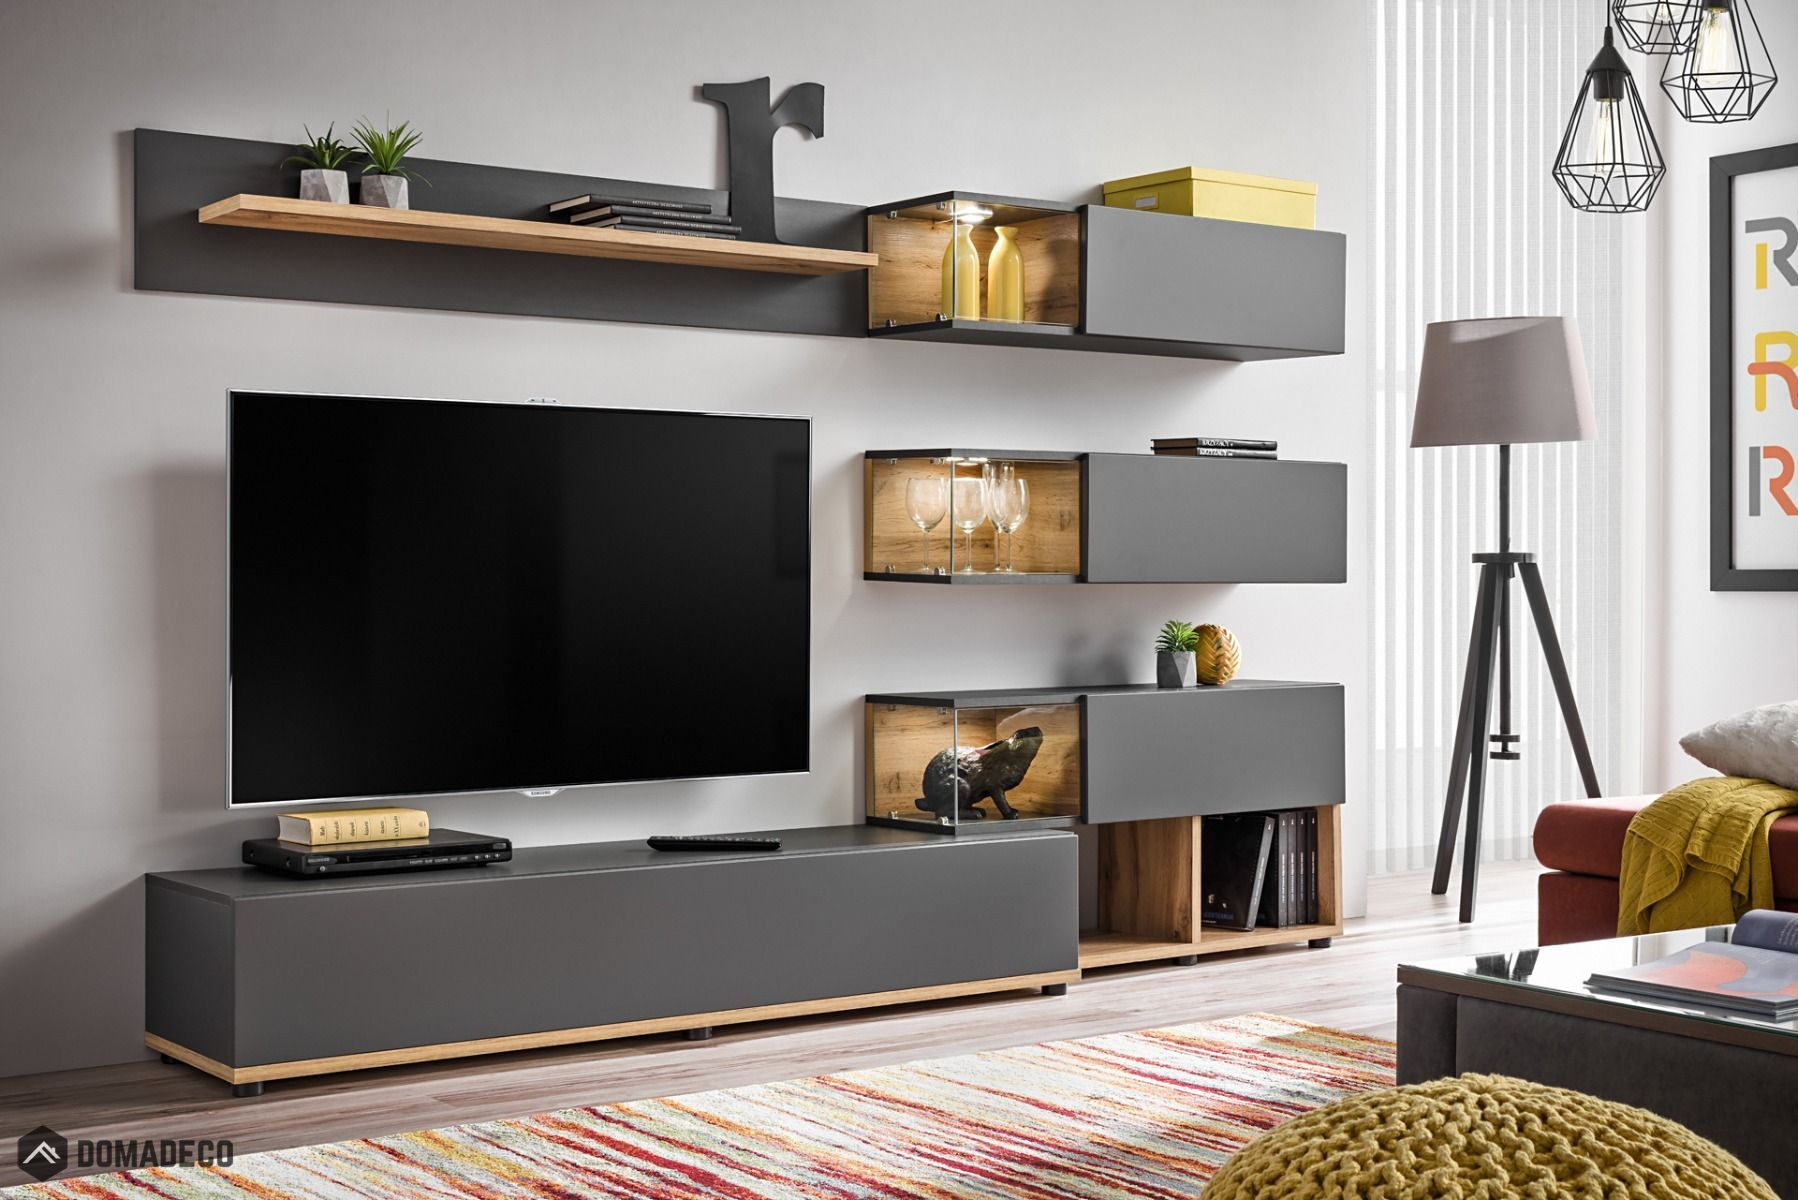 Simi Modern Entertainment Center Deco Meuble Tele Meuble Tv